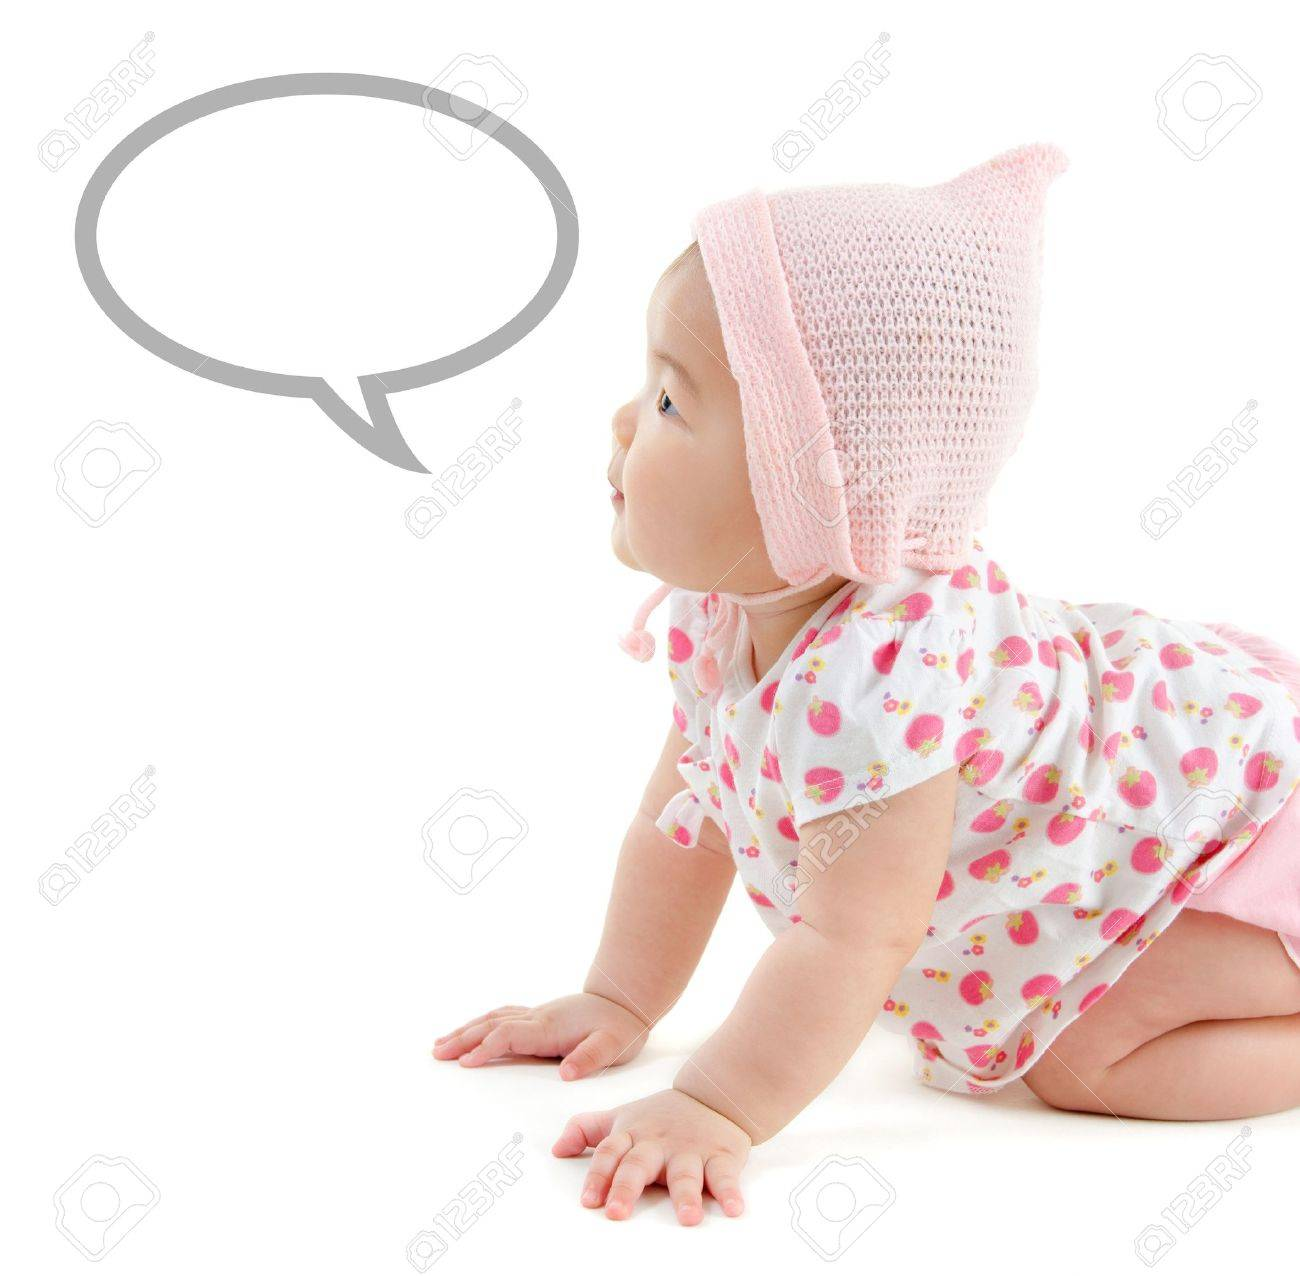 Six months old East Asian baby girl with announcement talk bubble crawling on white background Stock Photo - 17500999